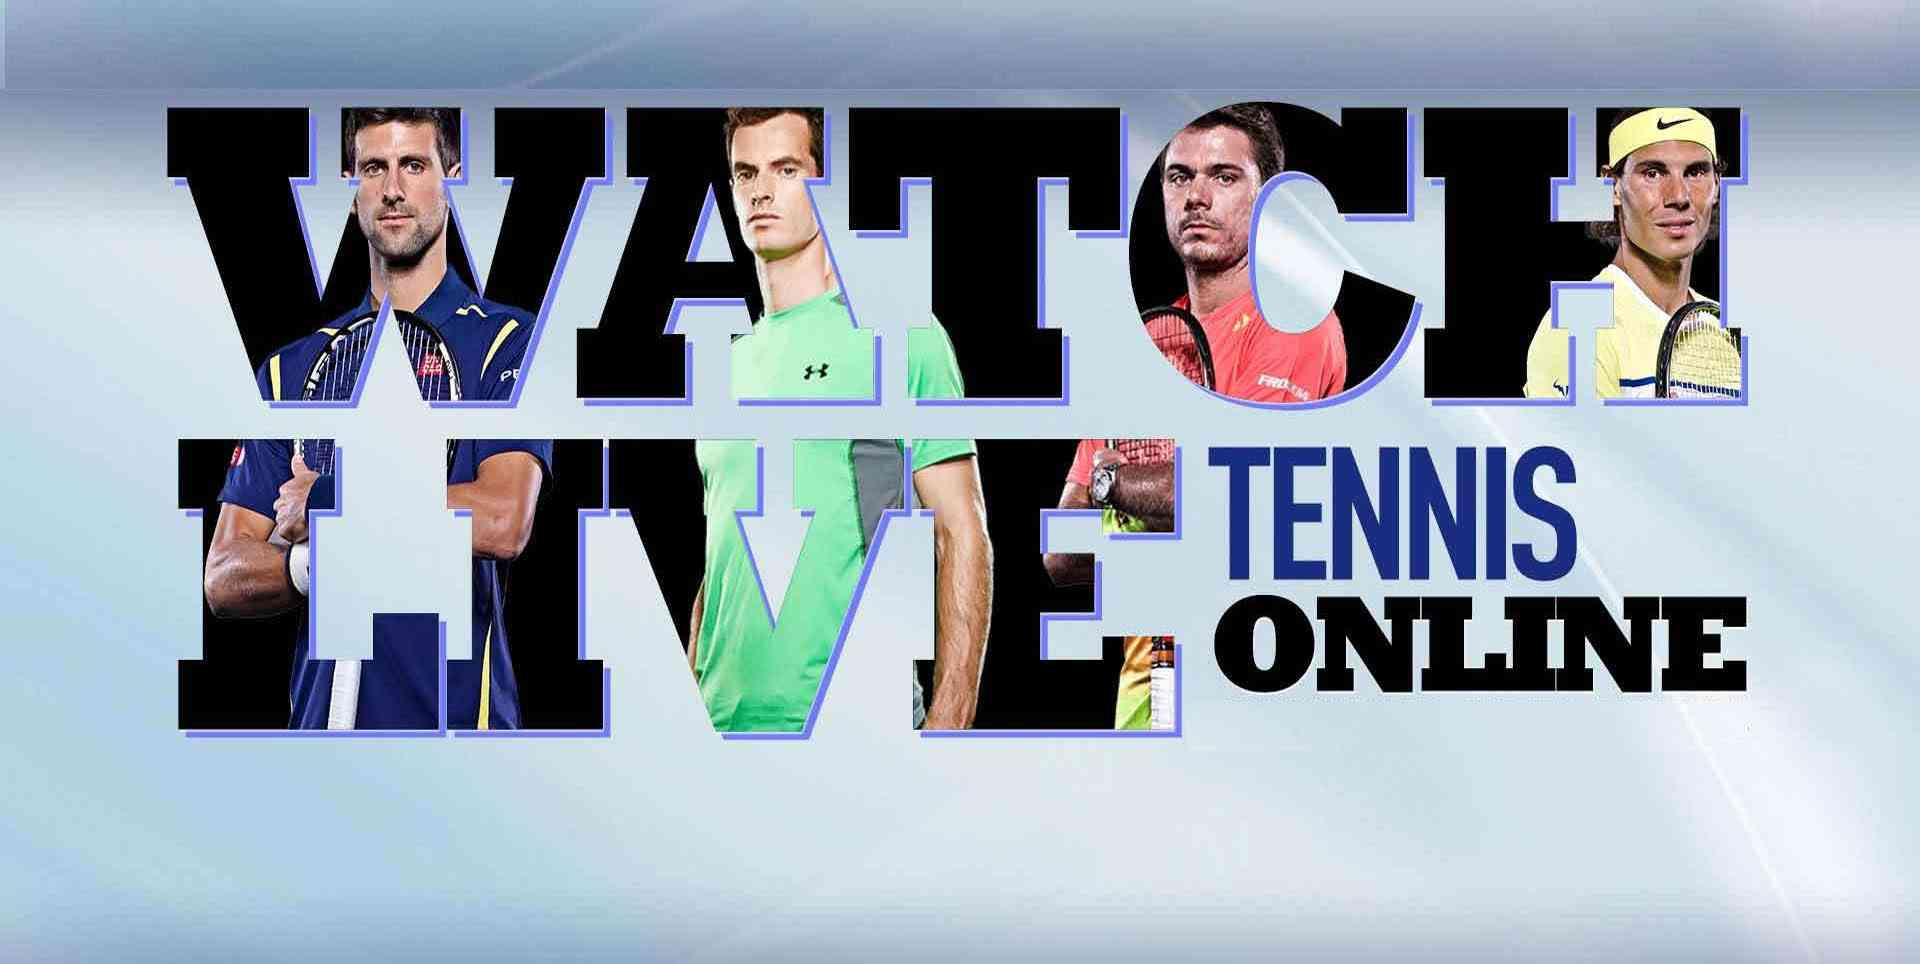 watch-r.-nadal-vs-s.-wawrinka-australian-open-2014-mens-singles-finals-online